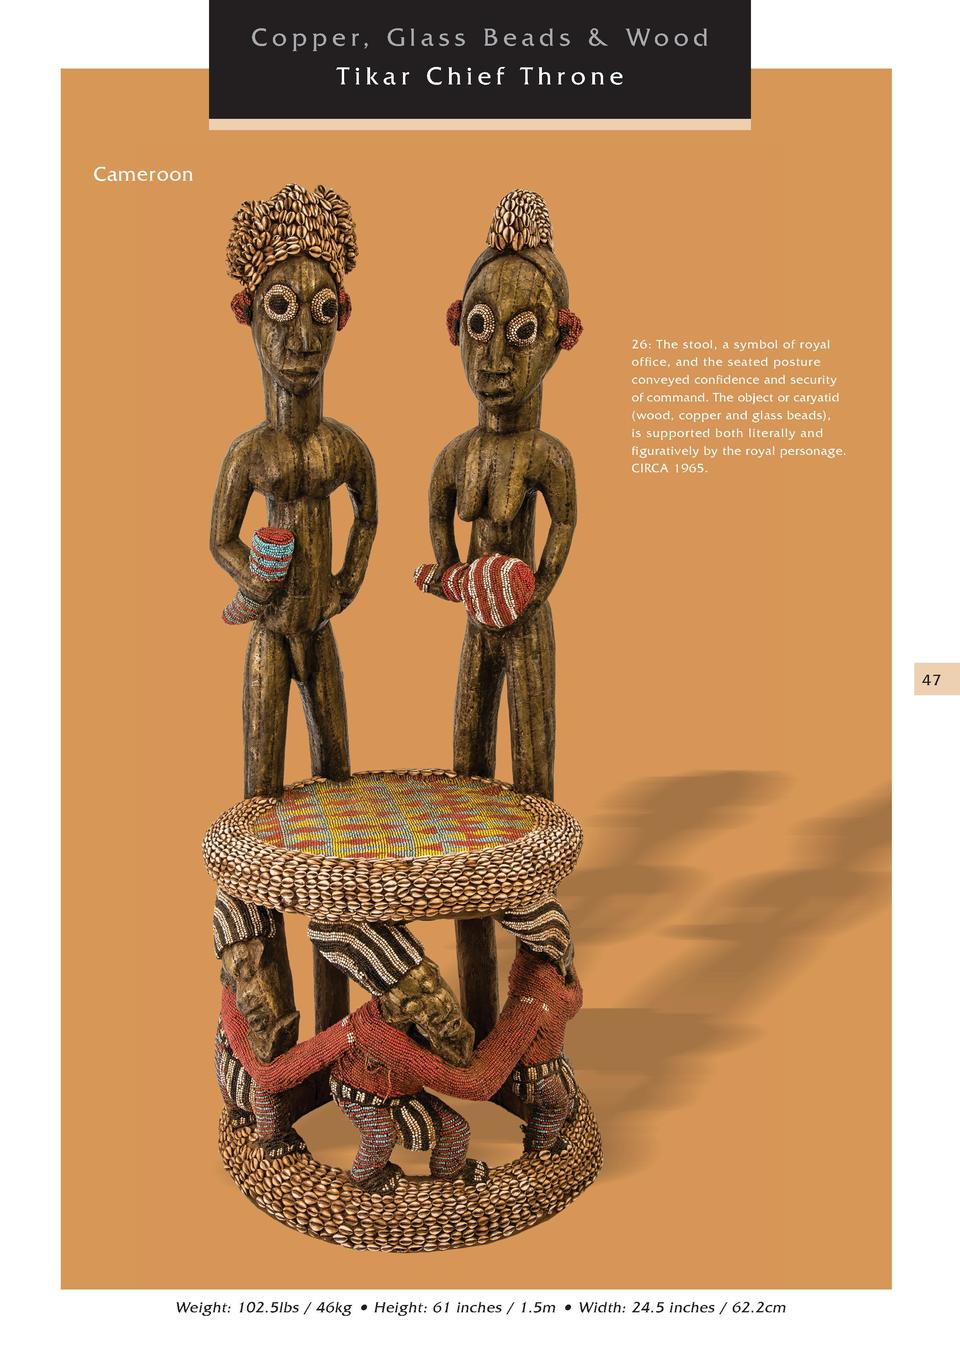 C o p p e r, G l a s s B e a d s   W o o d Tikar Chief Throne  Cameroon  26  The stool, a symbol of royal of fice, and the...